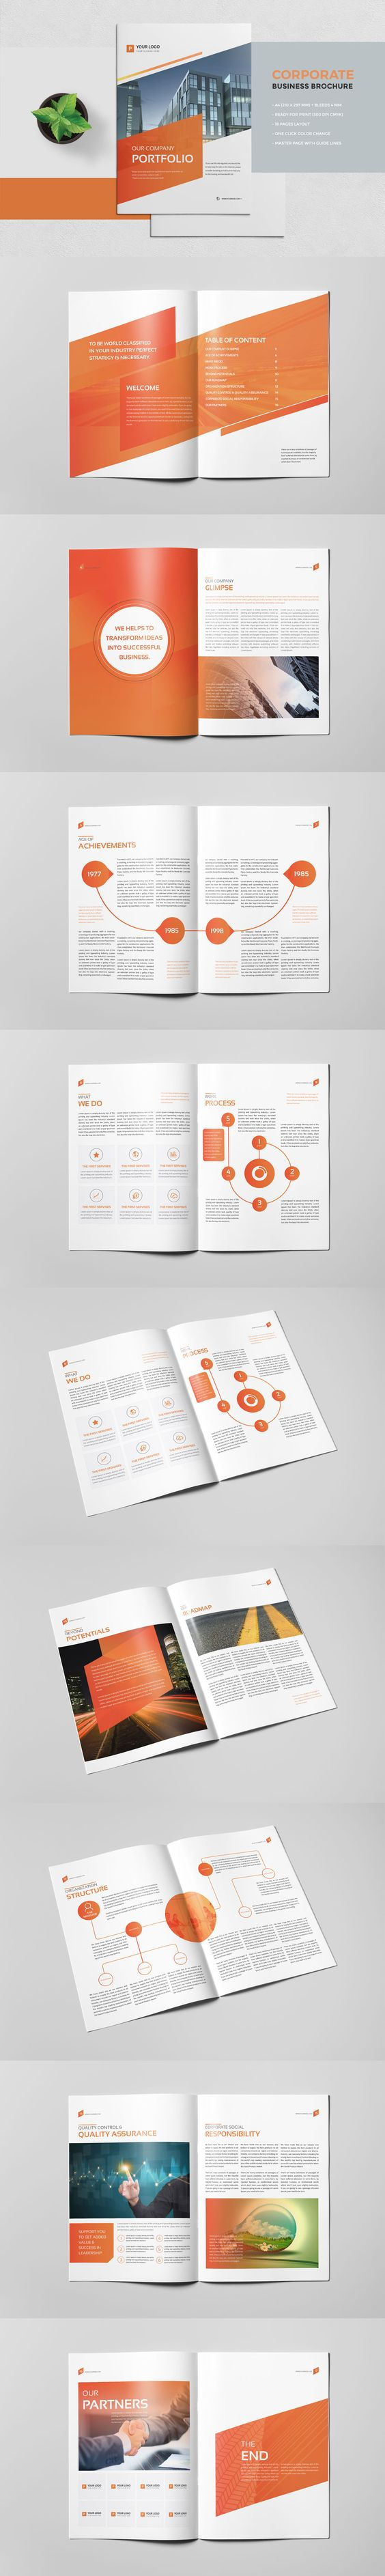 indesign free brochure templates - corporate portfolio brochure 18 pages template indesign